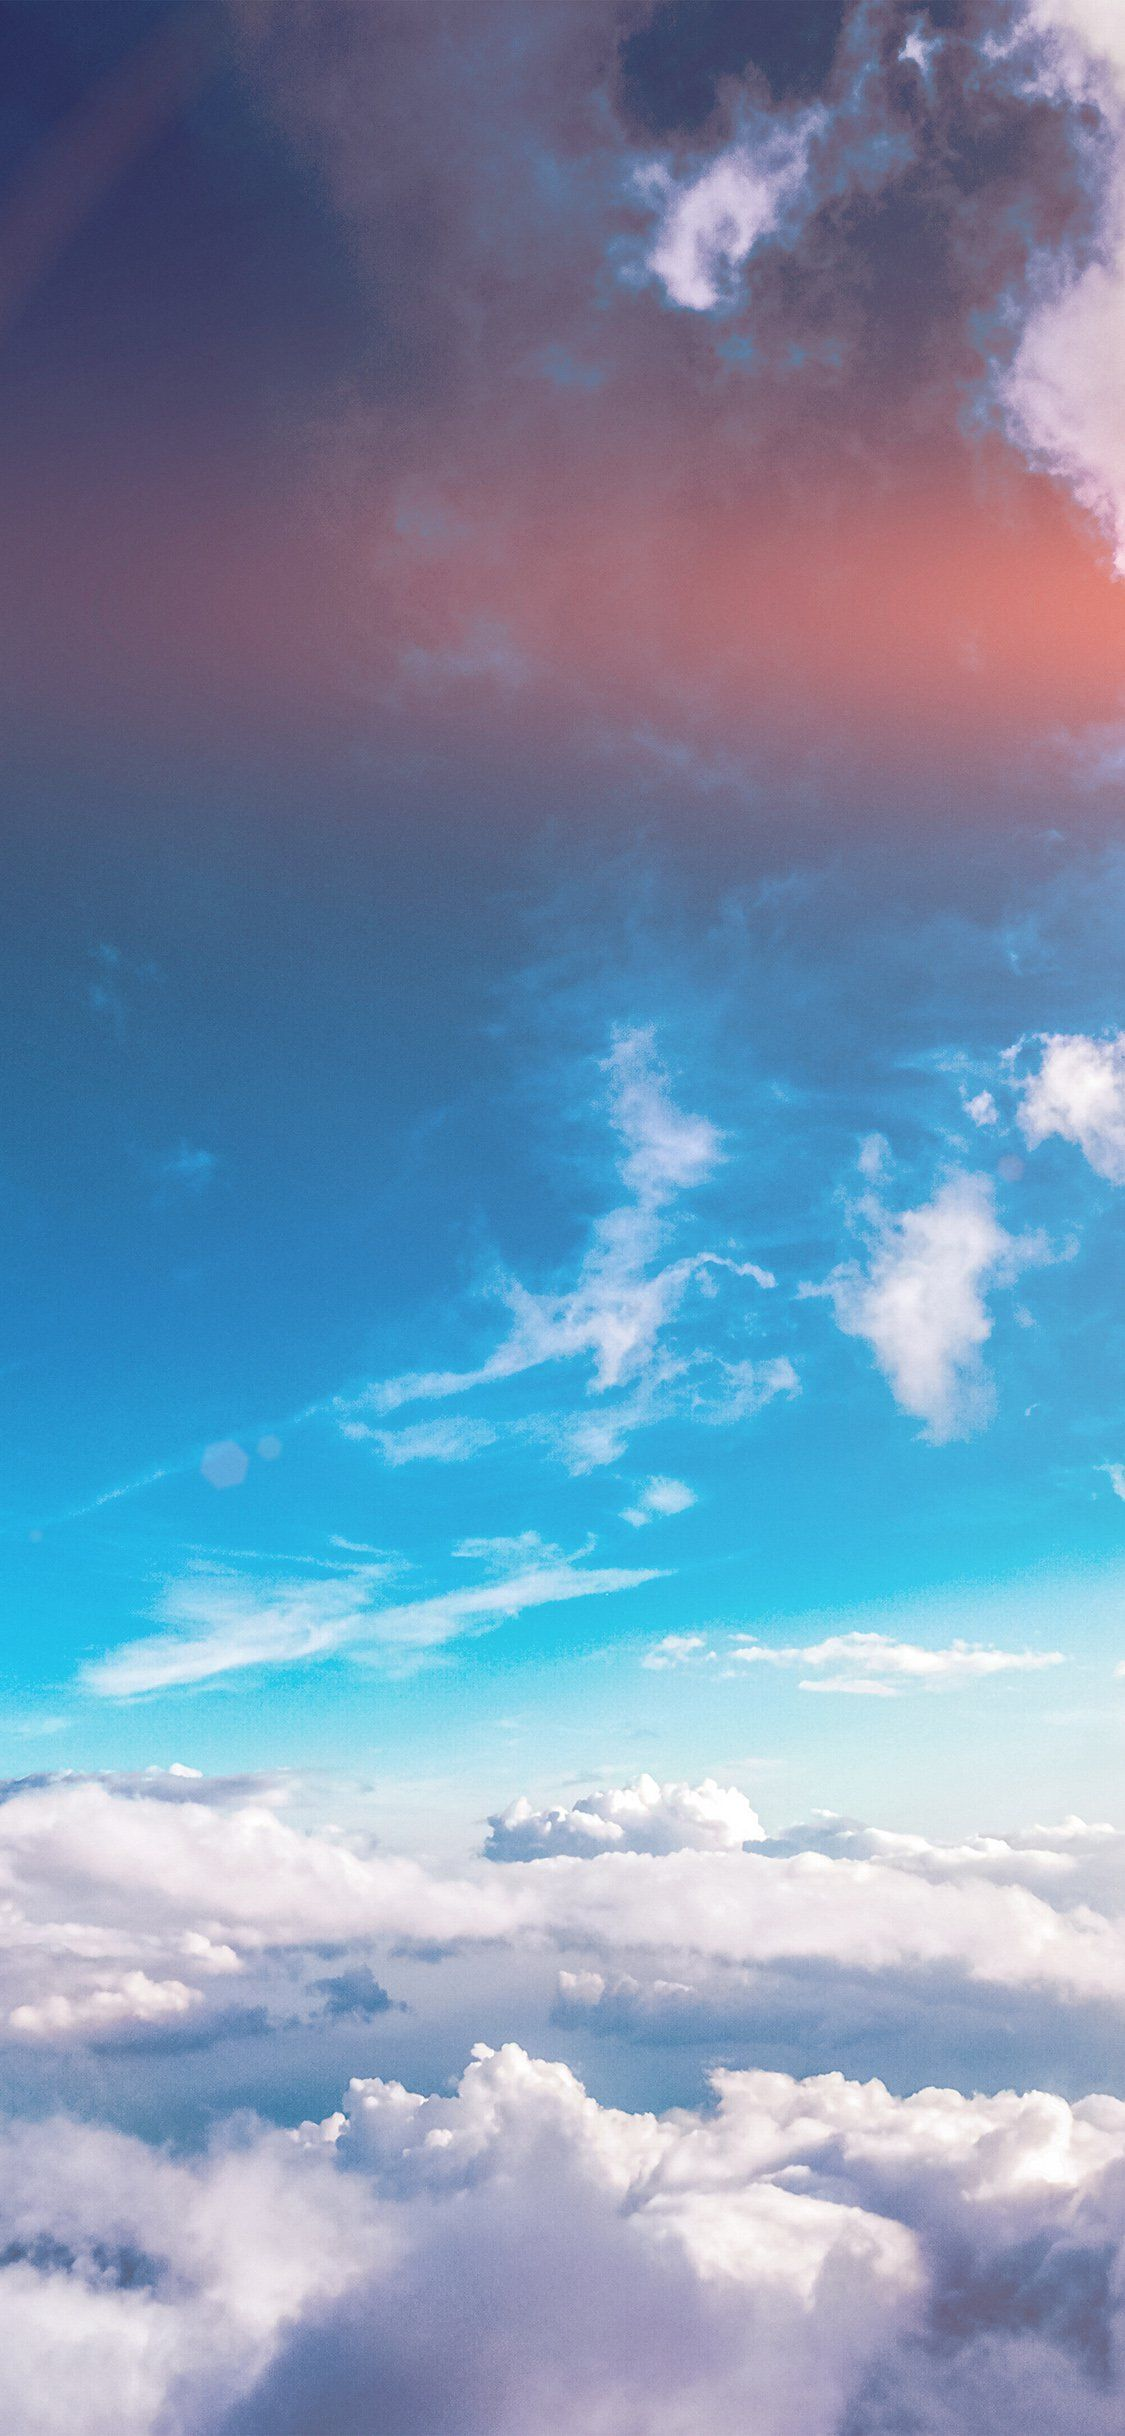 Summer Sunny Flare Iphone X Wallpaper Clouds Wallpaper Iphone